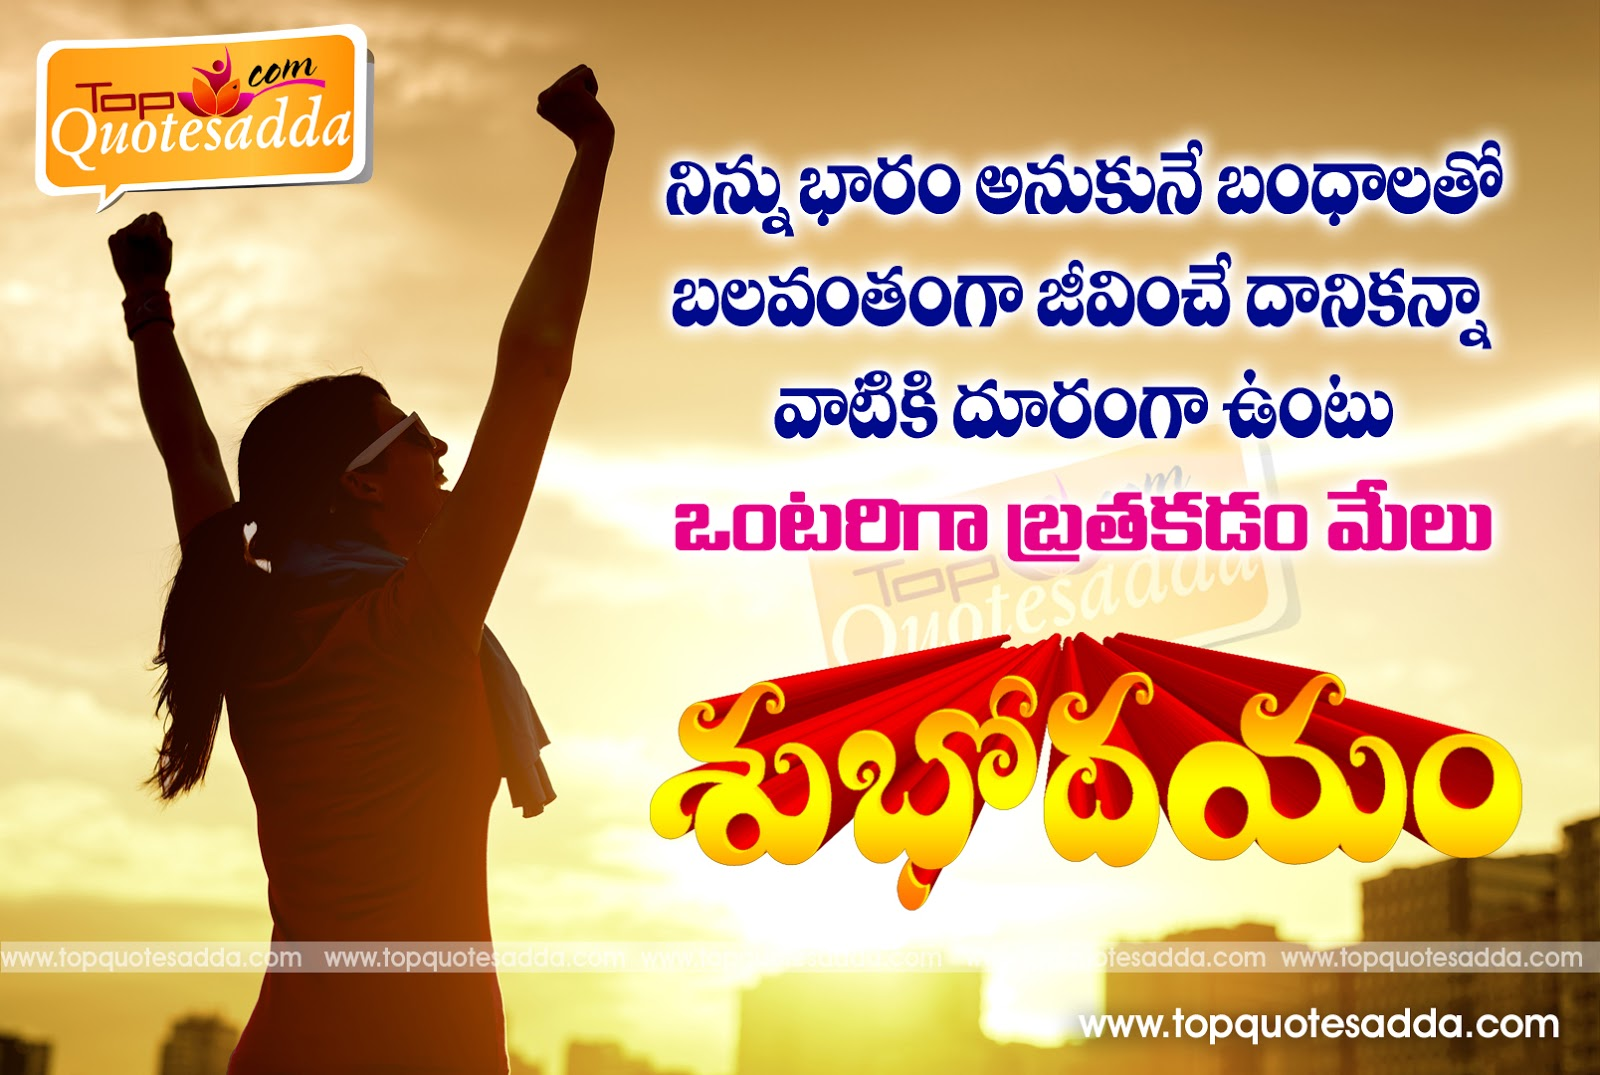 Good Morning Telugu Wishes Quotes And Greetings Topquotesadda